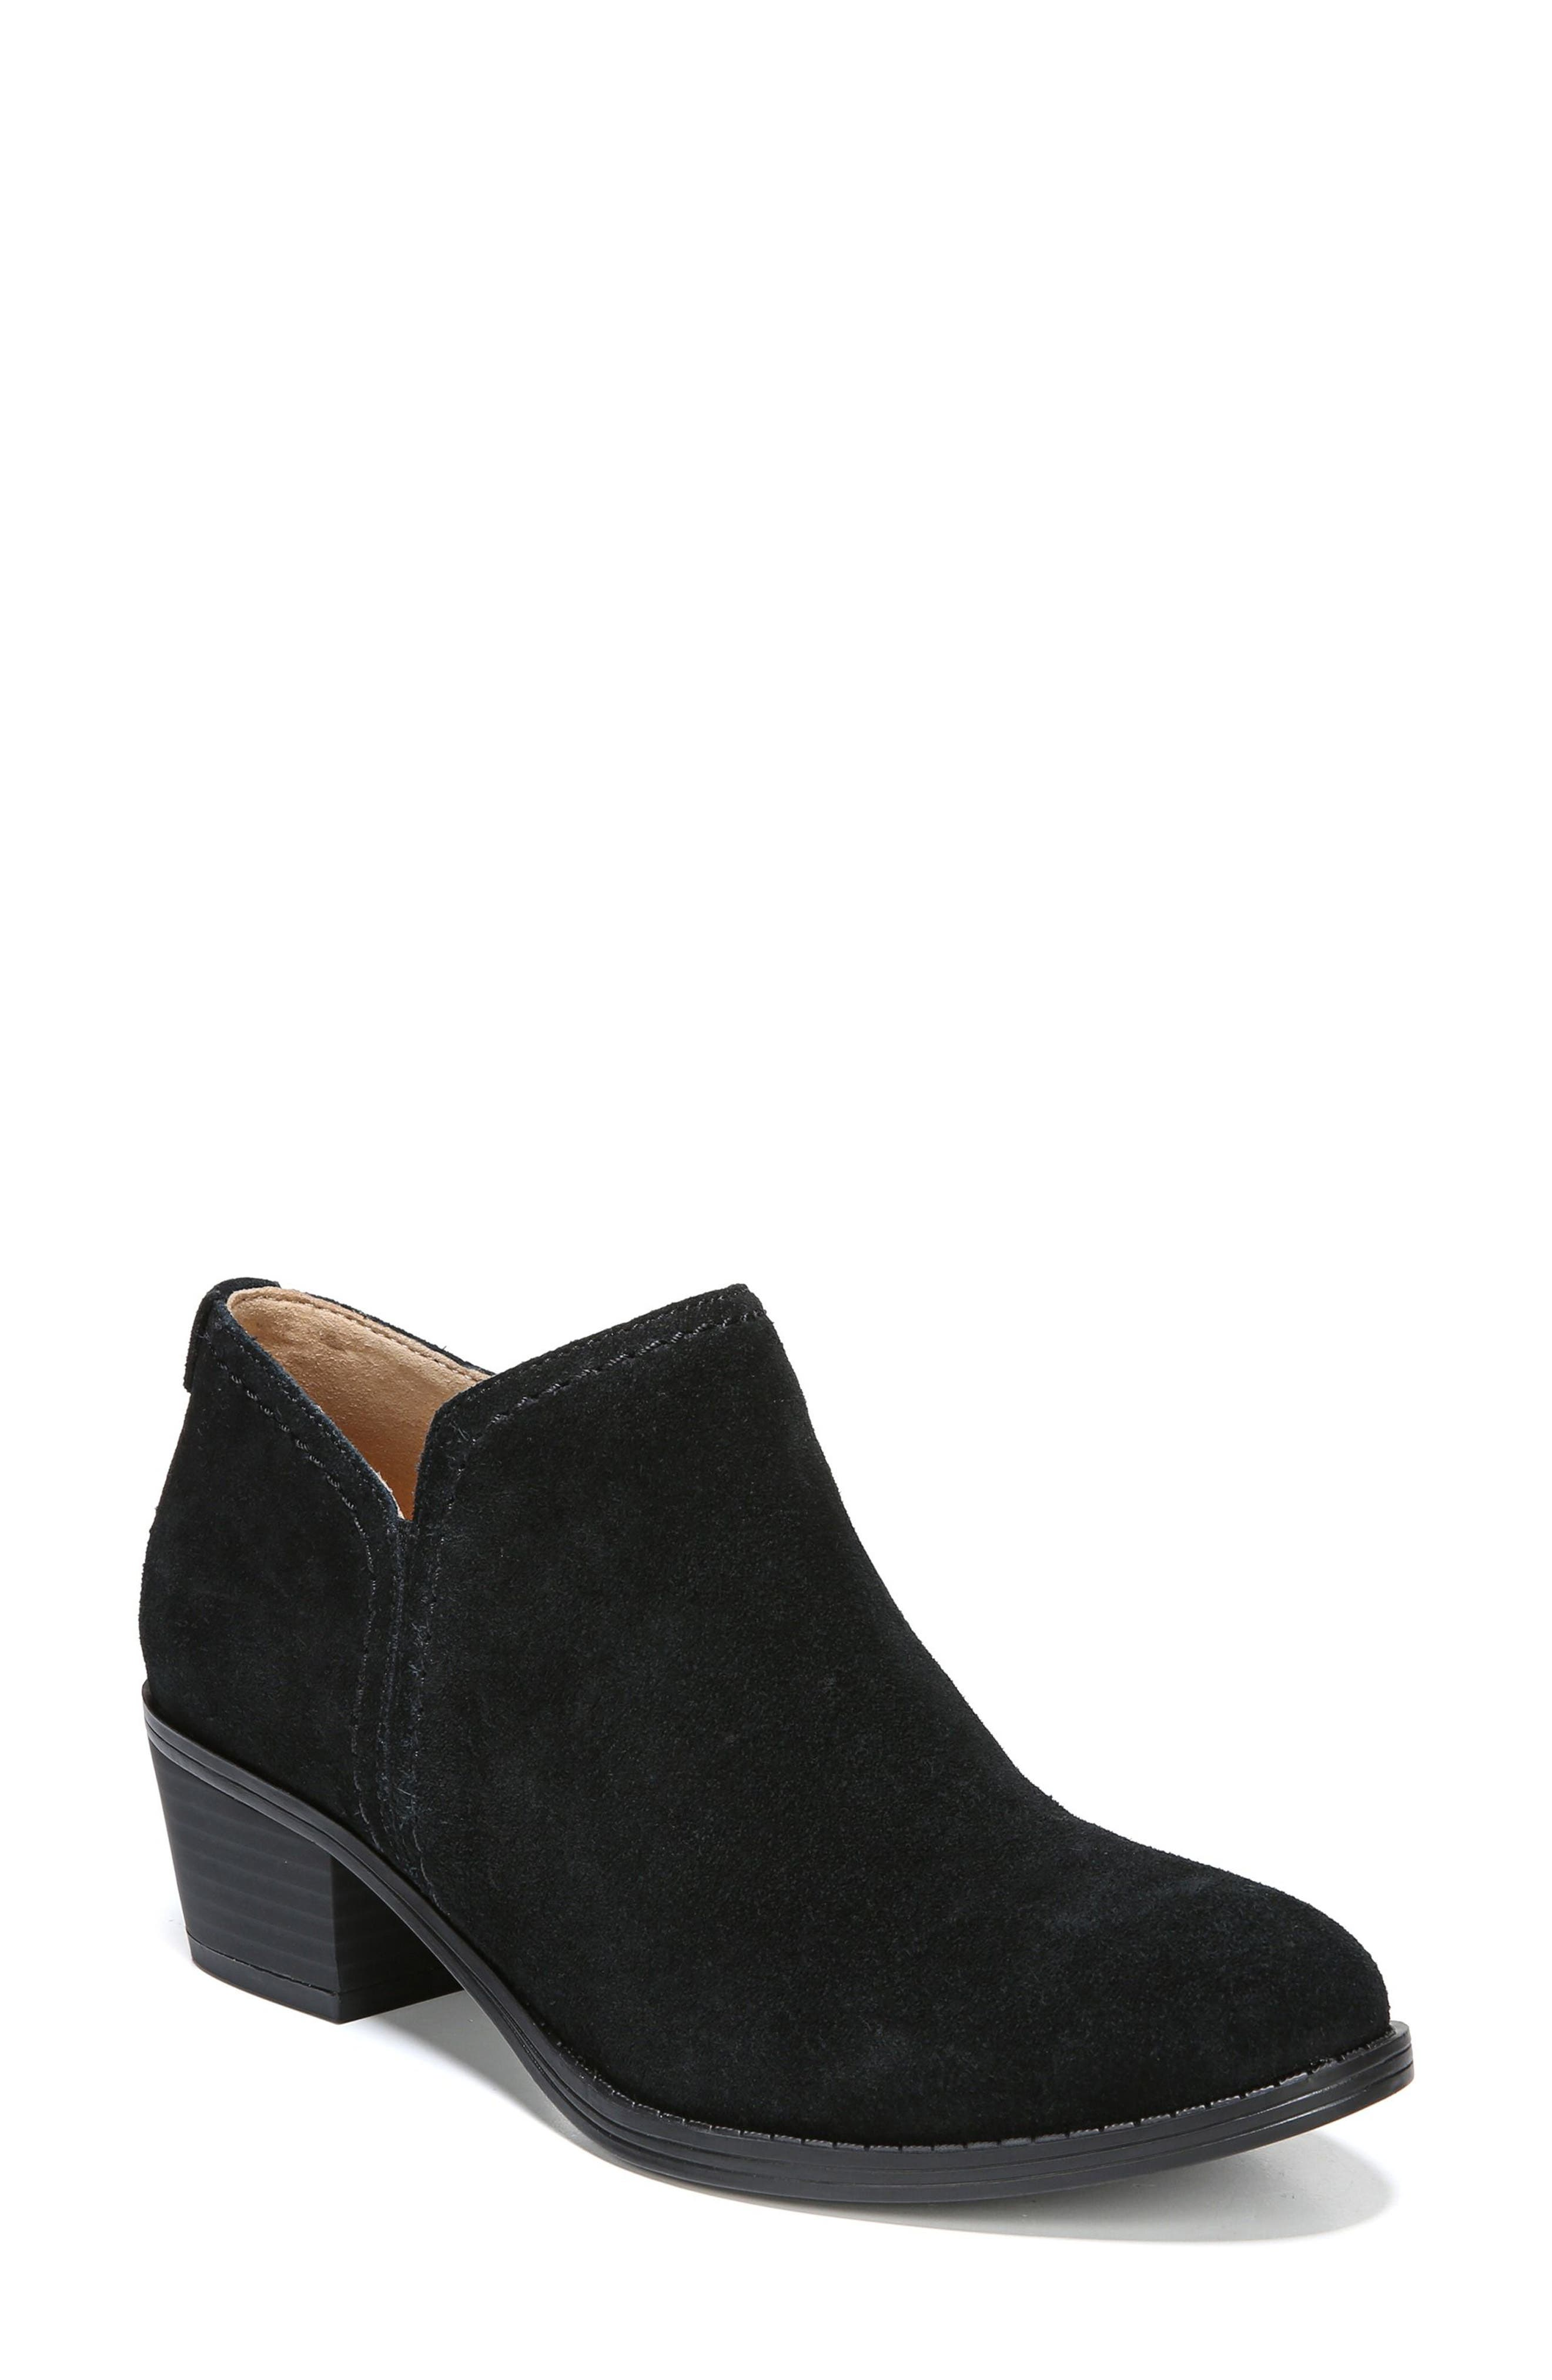 'Zarie' Block Heel Bootie,                         Main,                         color, Black Suede